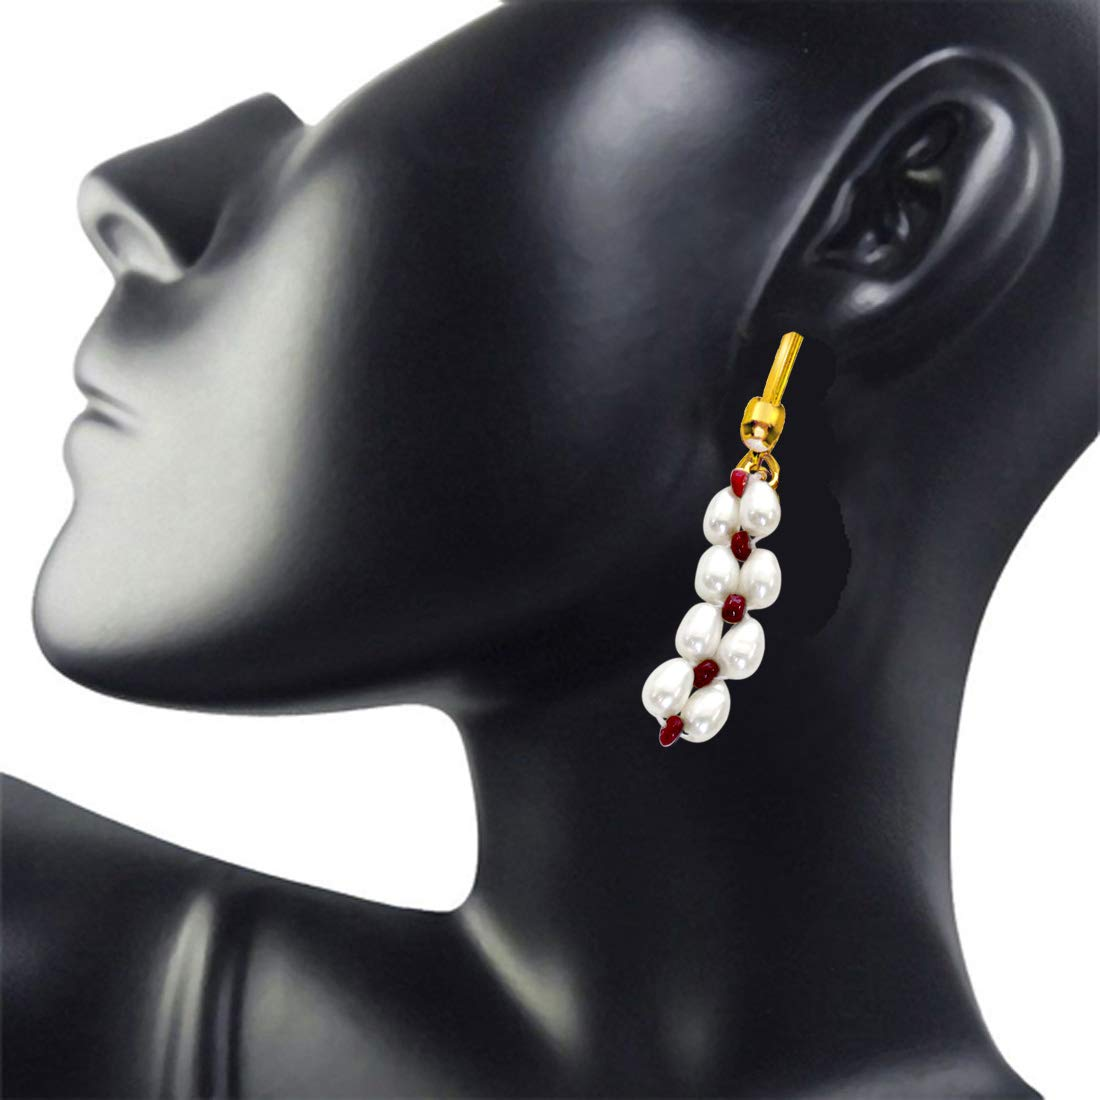 Pearl Ruby Ecstasy - Real Rice Pearl & Red Ruby Beads Hanging Earrings for Women (SE70)